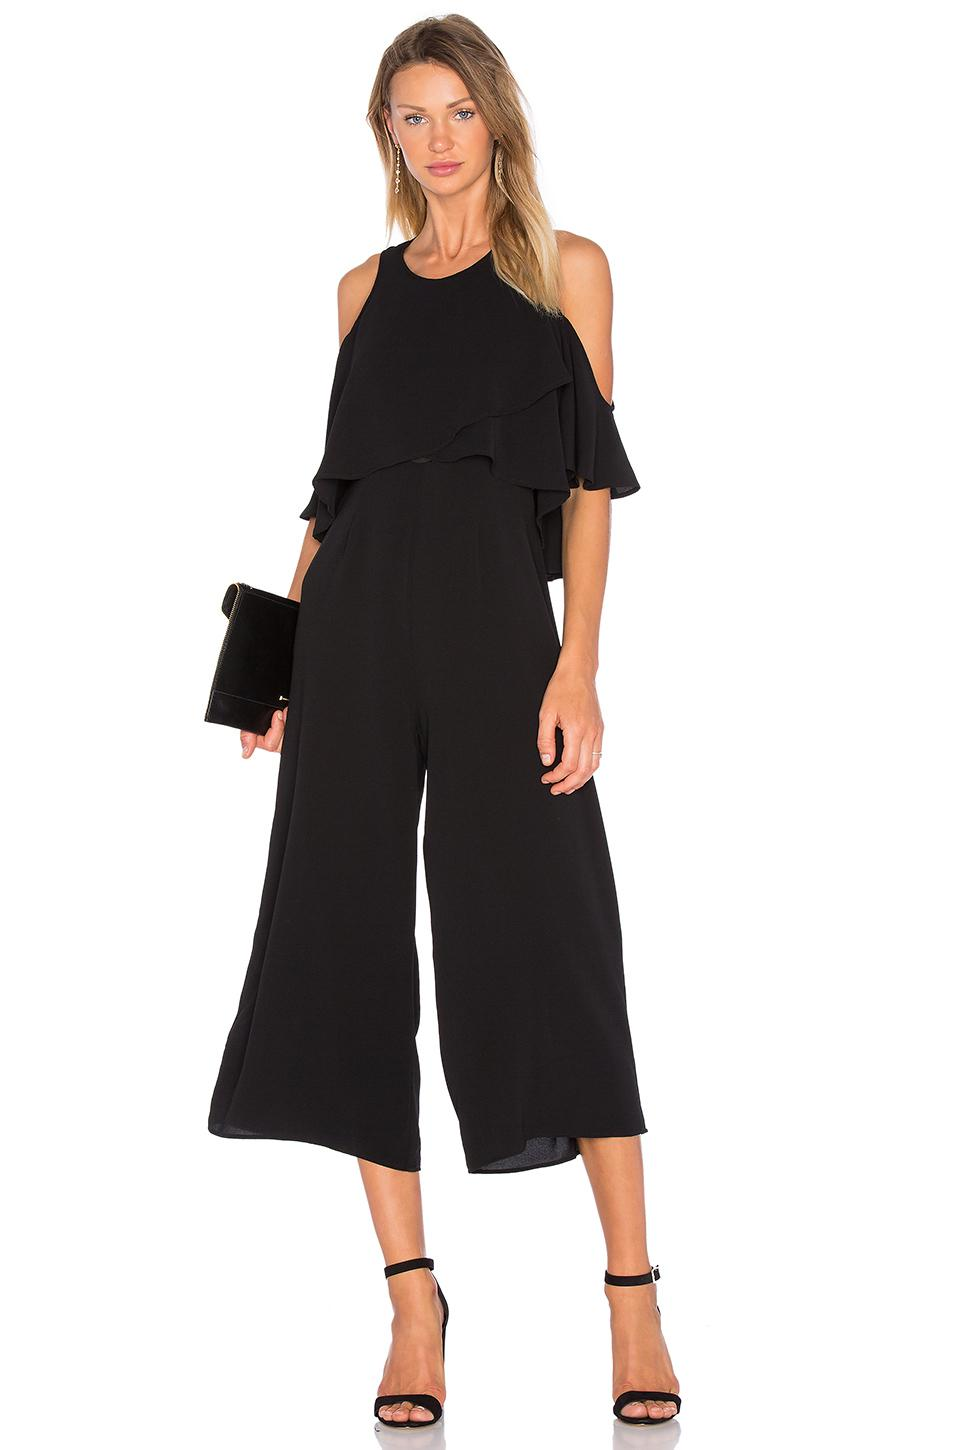 It is an image of Agile The Fifth Label Moonlit Jumpsuit